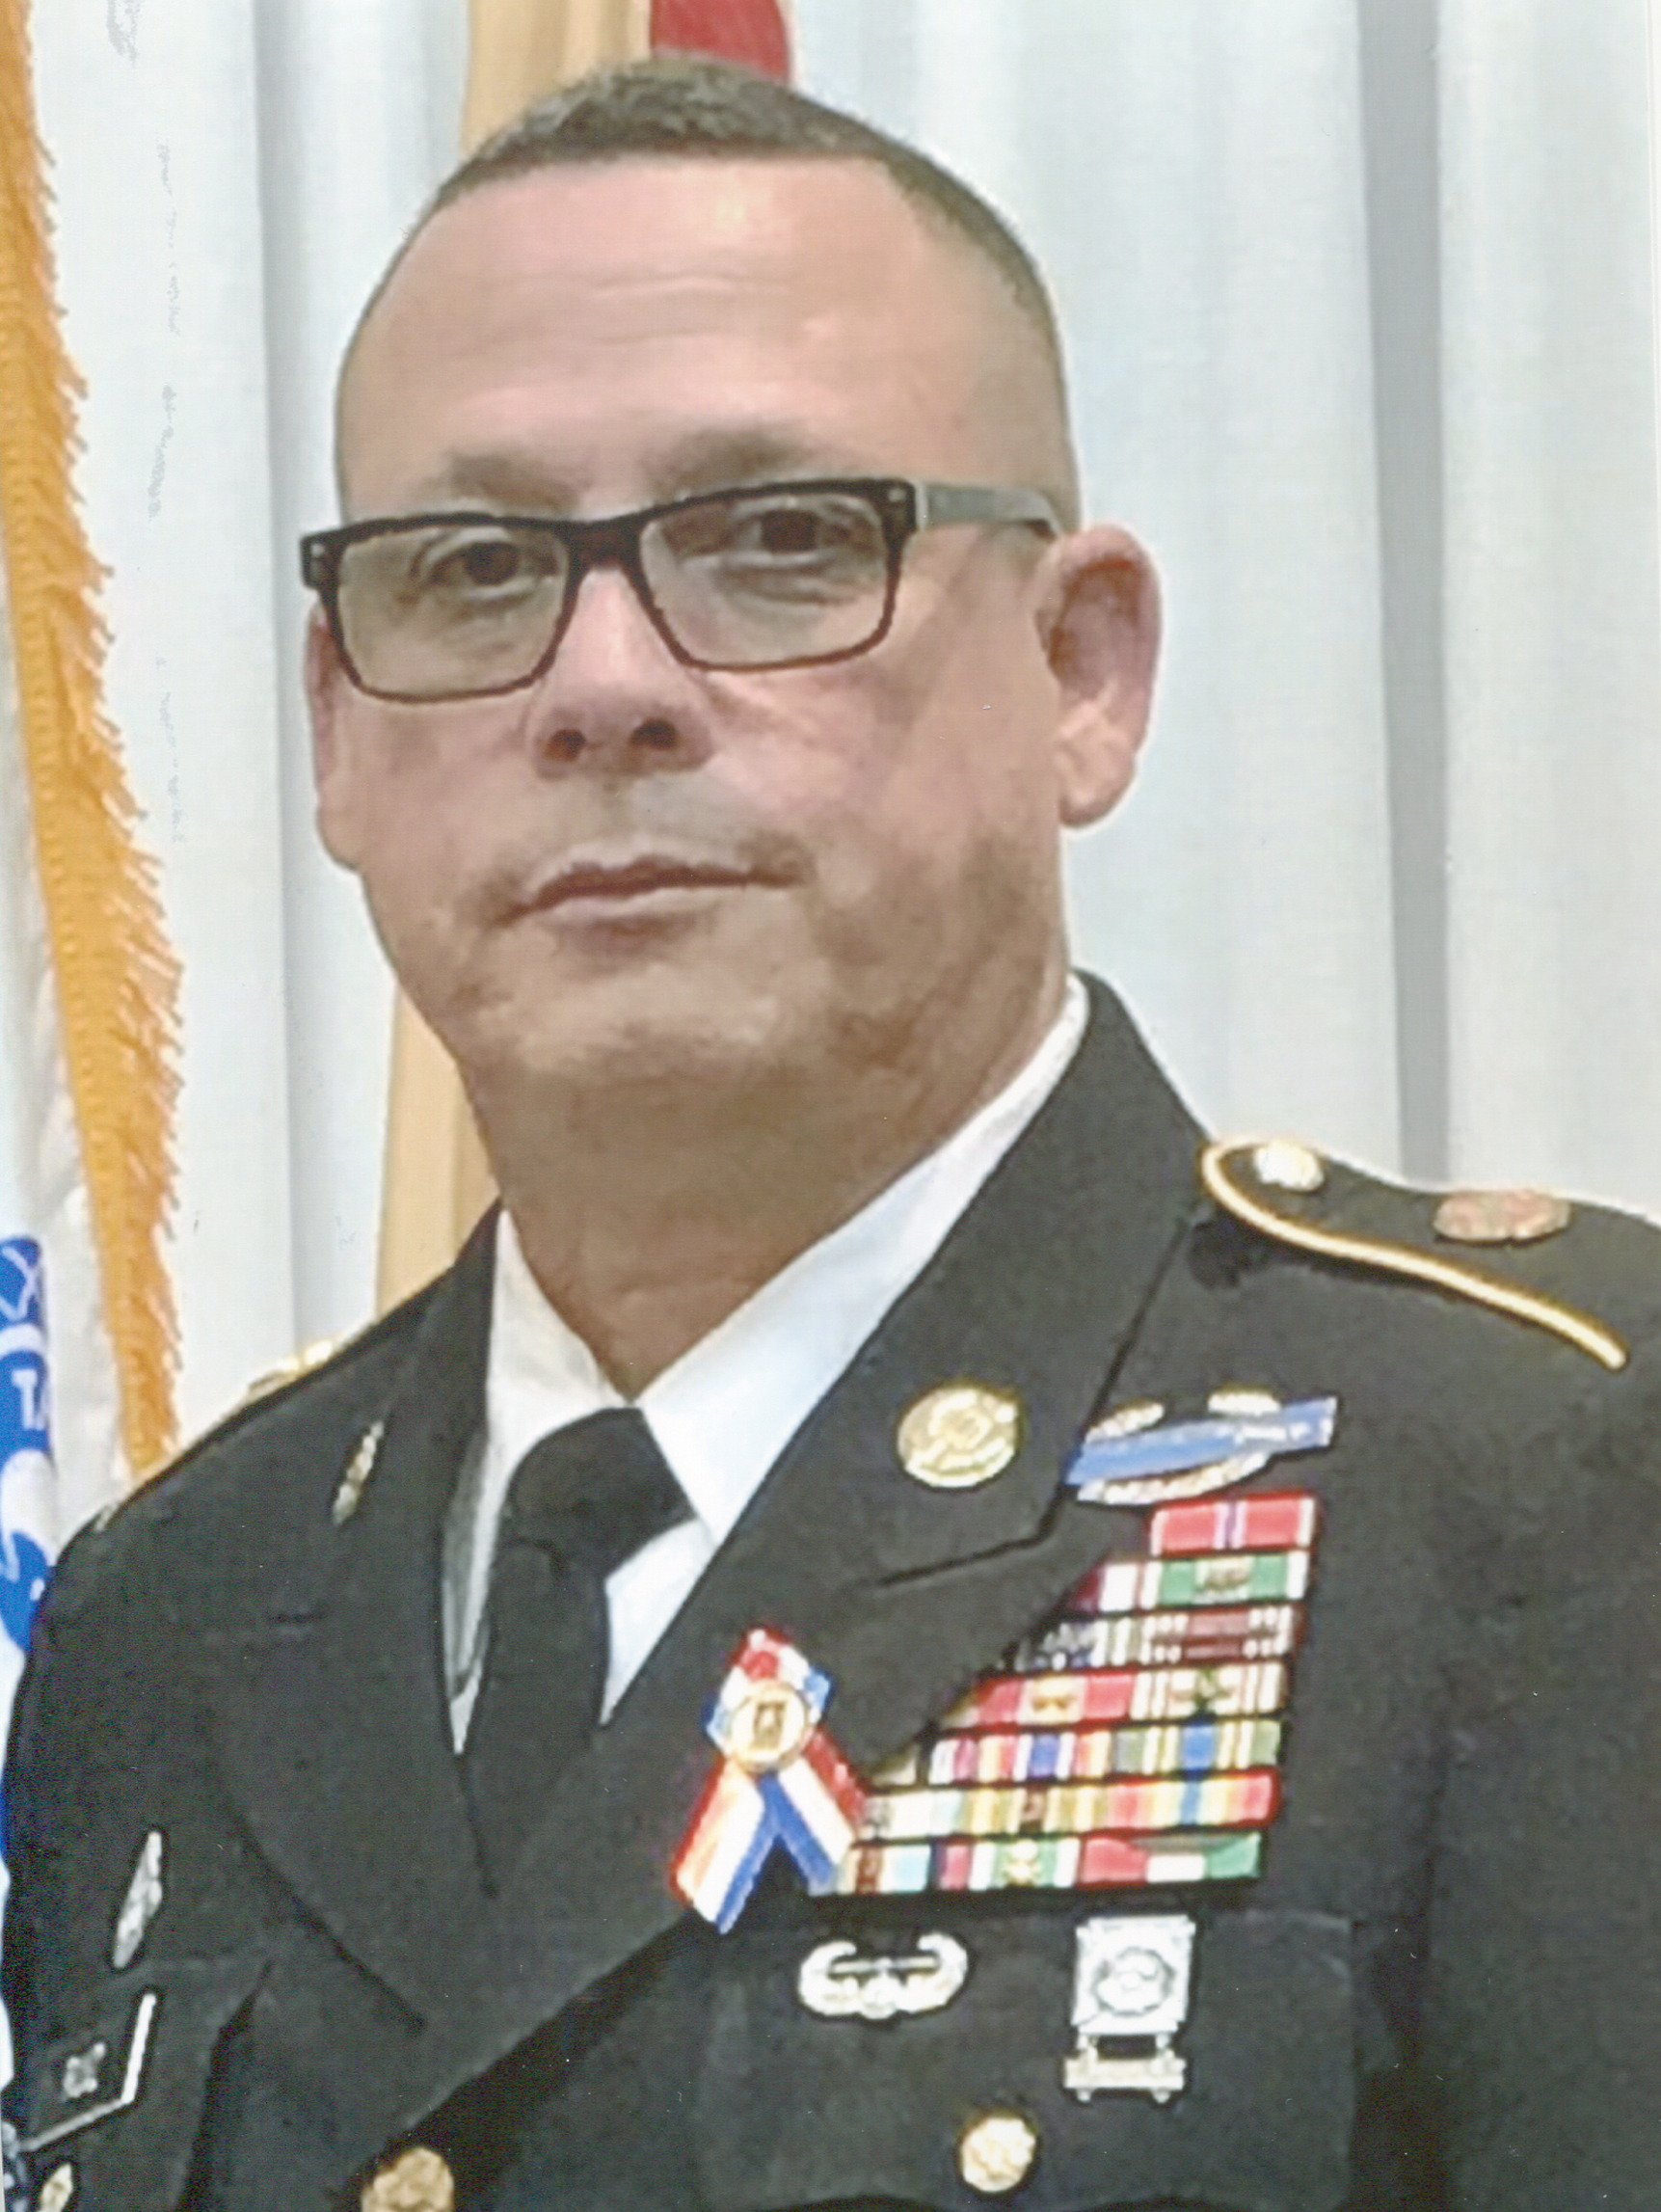 U S  Army retirement held for Dunkirk local | News, Sports